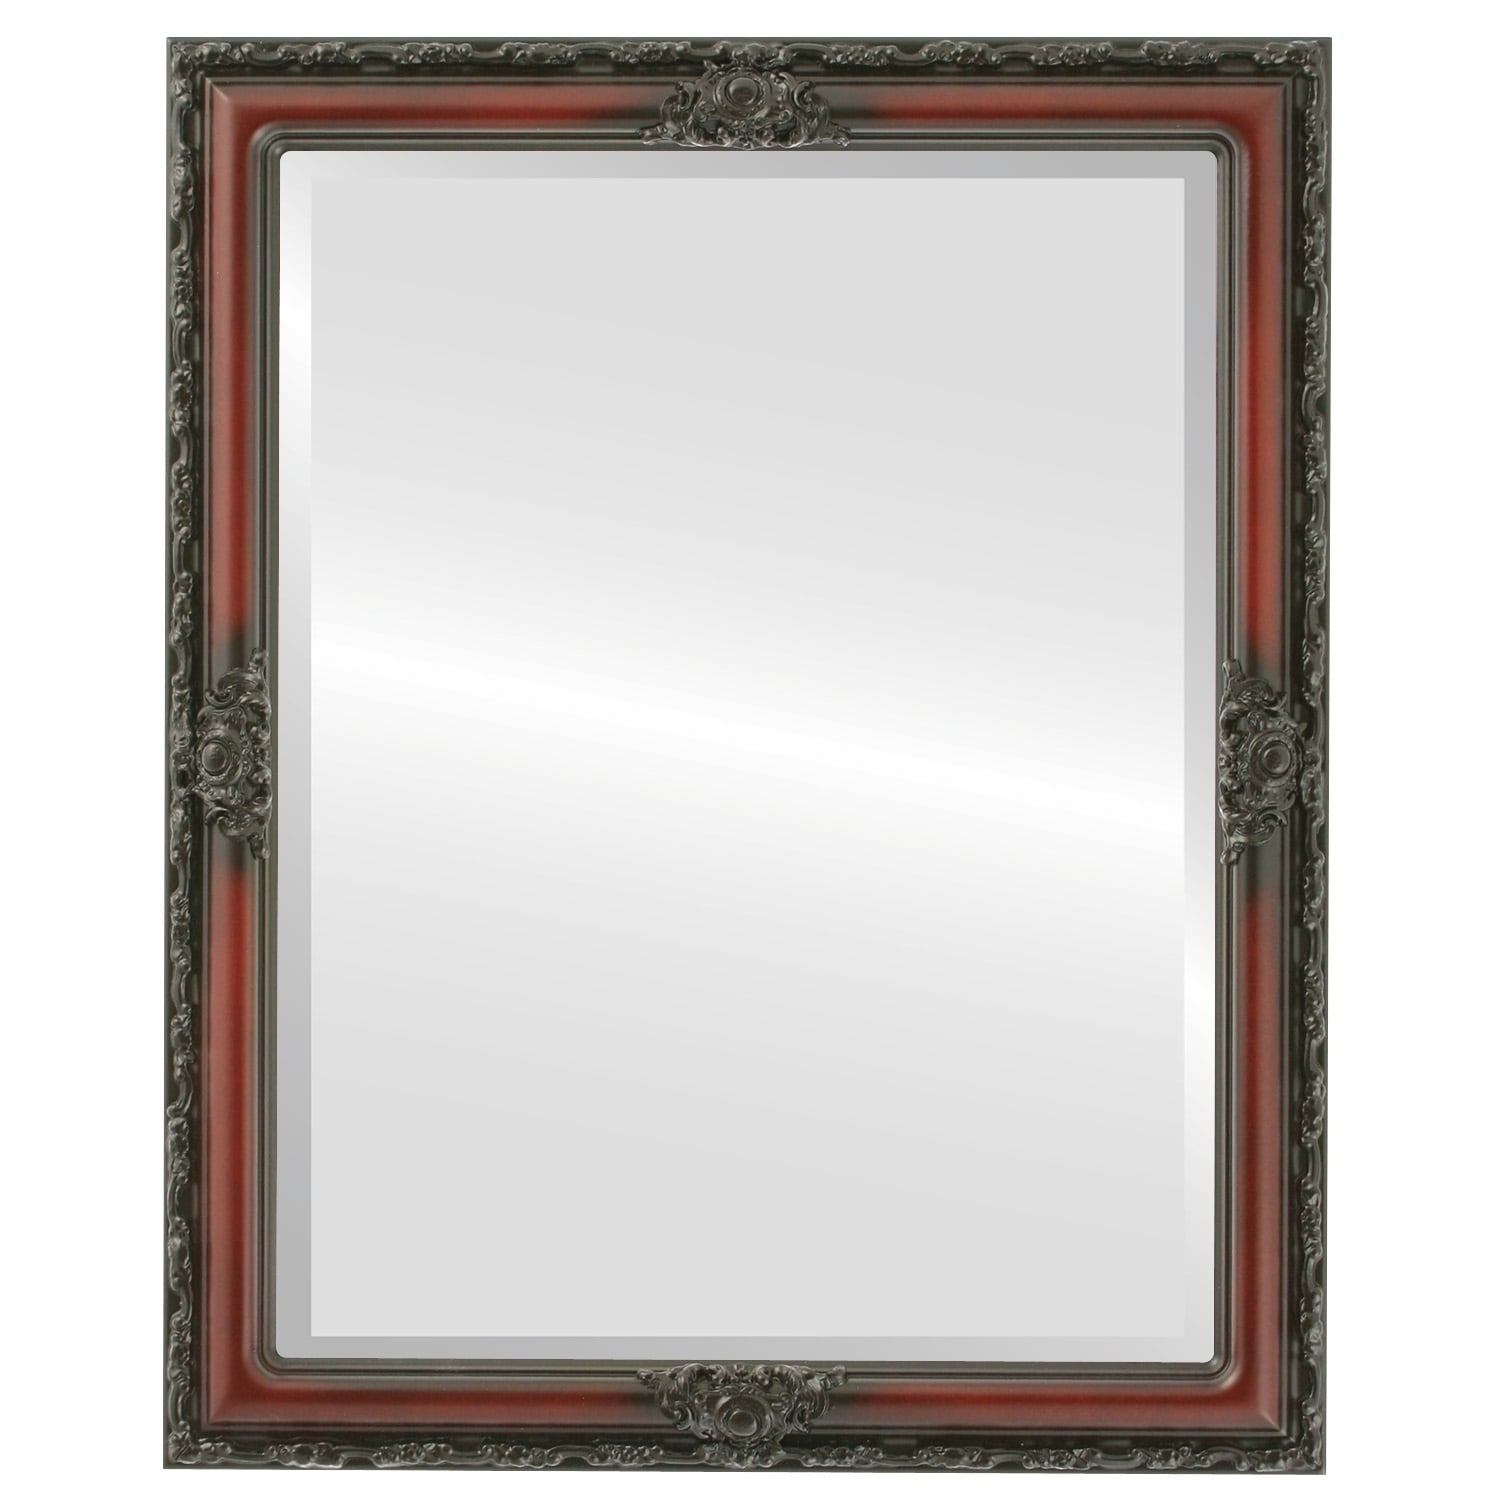 Jefferson Framed Rectangle Mirror in Rosewood - Red (Medium (15-32 high) - 26X32)